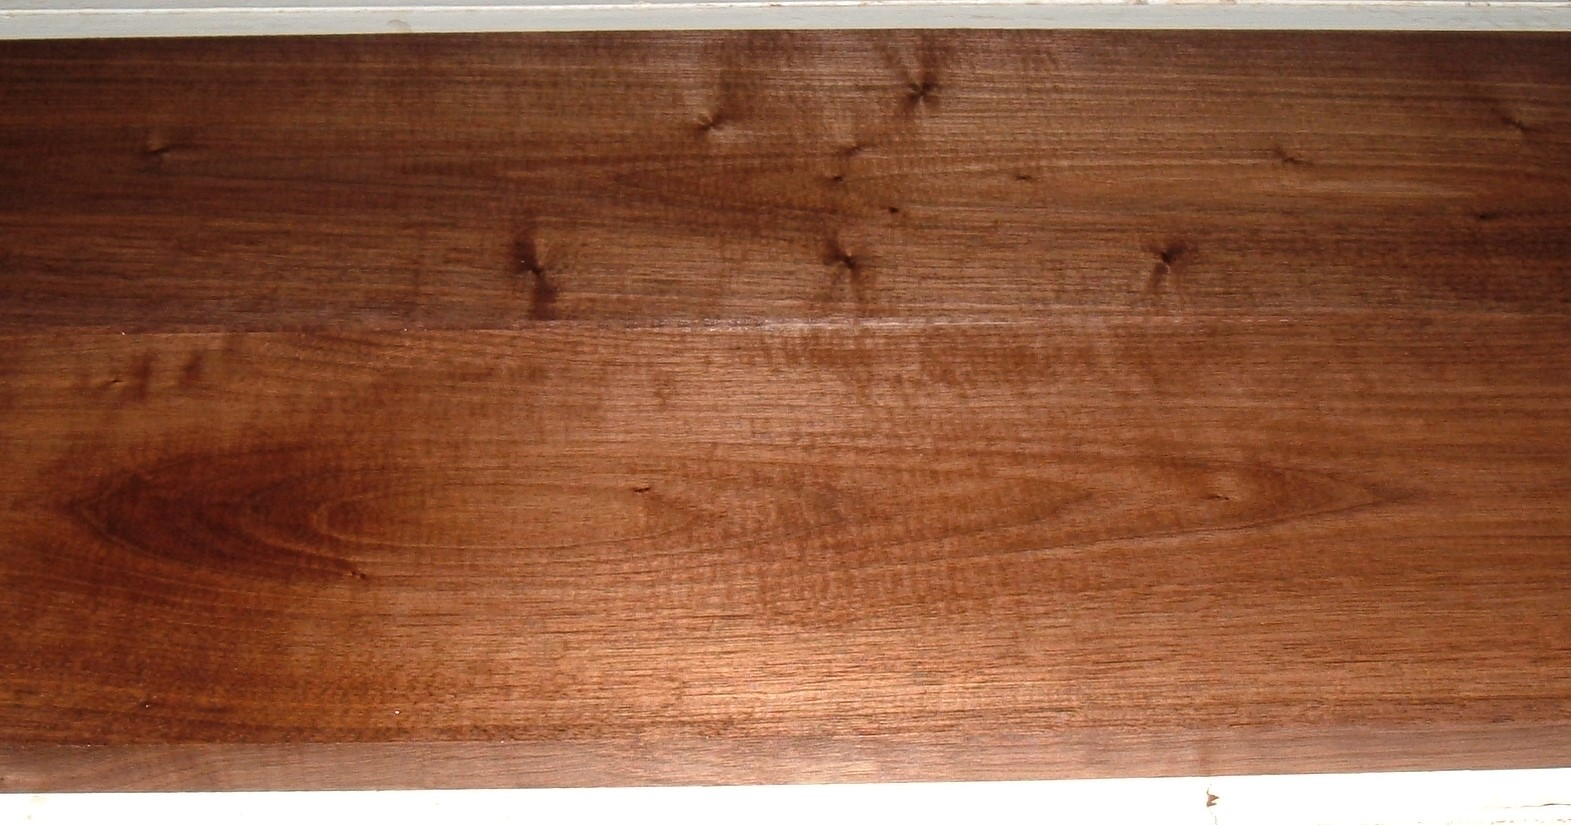 BW2003-46JJ, 2 bds, 11/16x6-1/2x42, 11/16x6-5/8x42, Plain Black Walnut